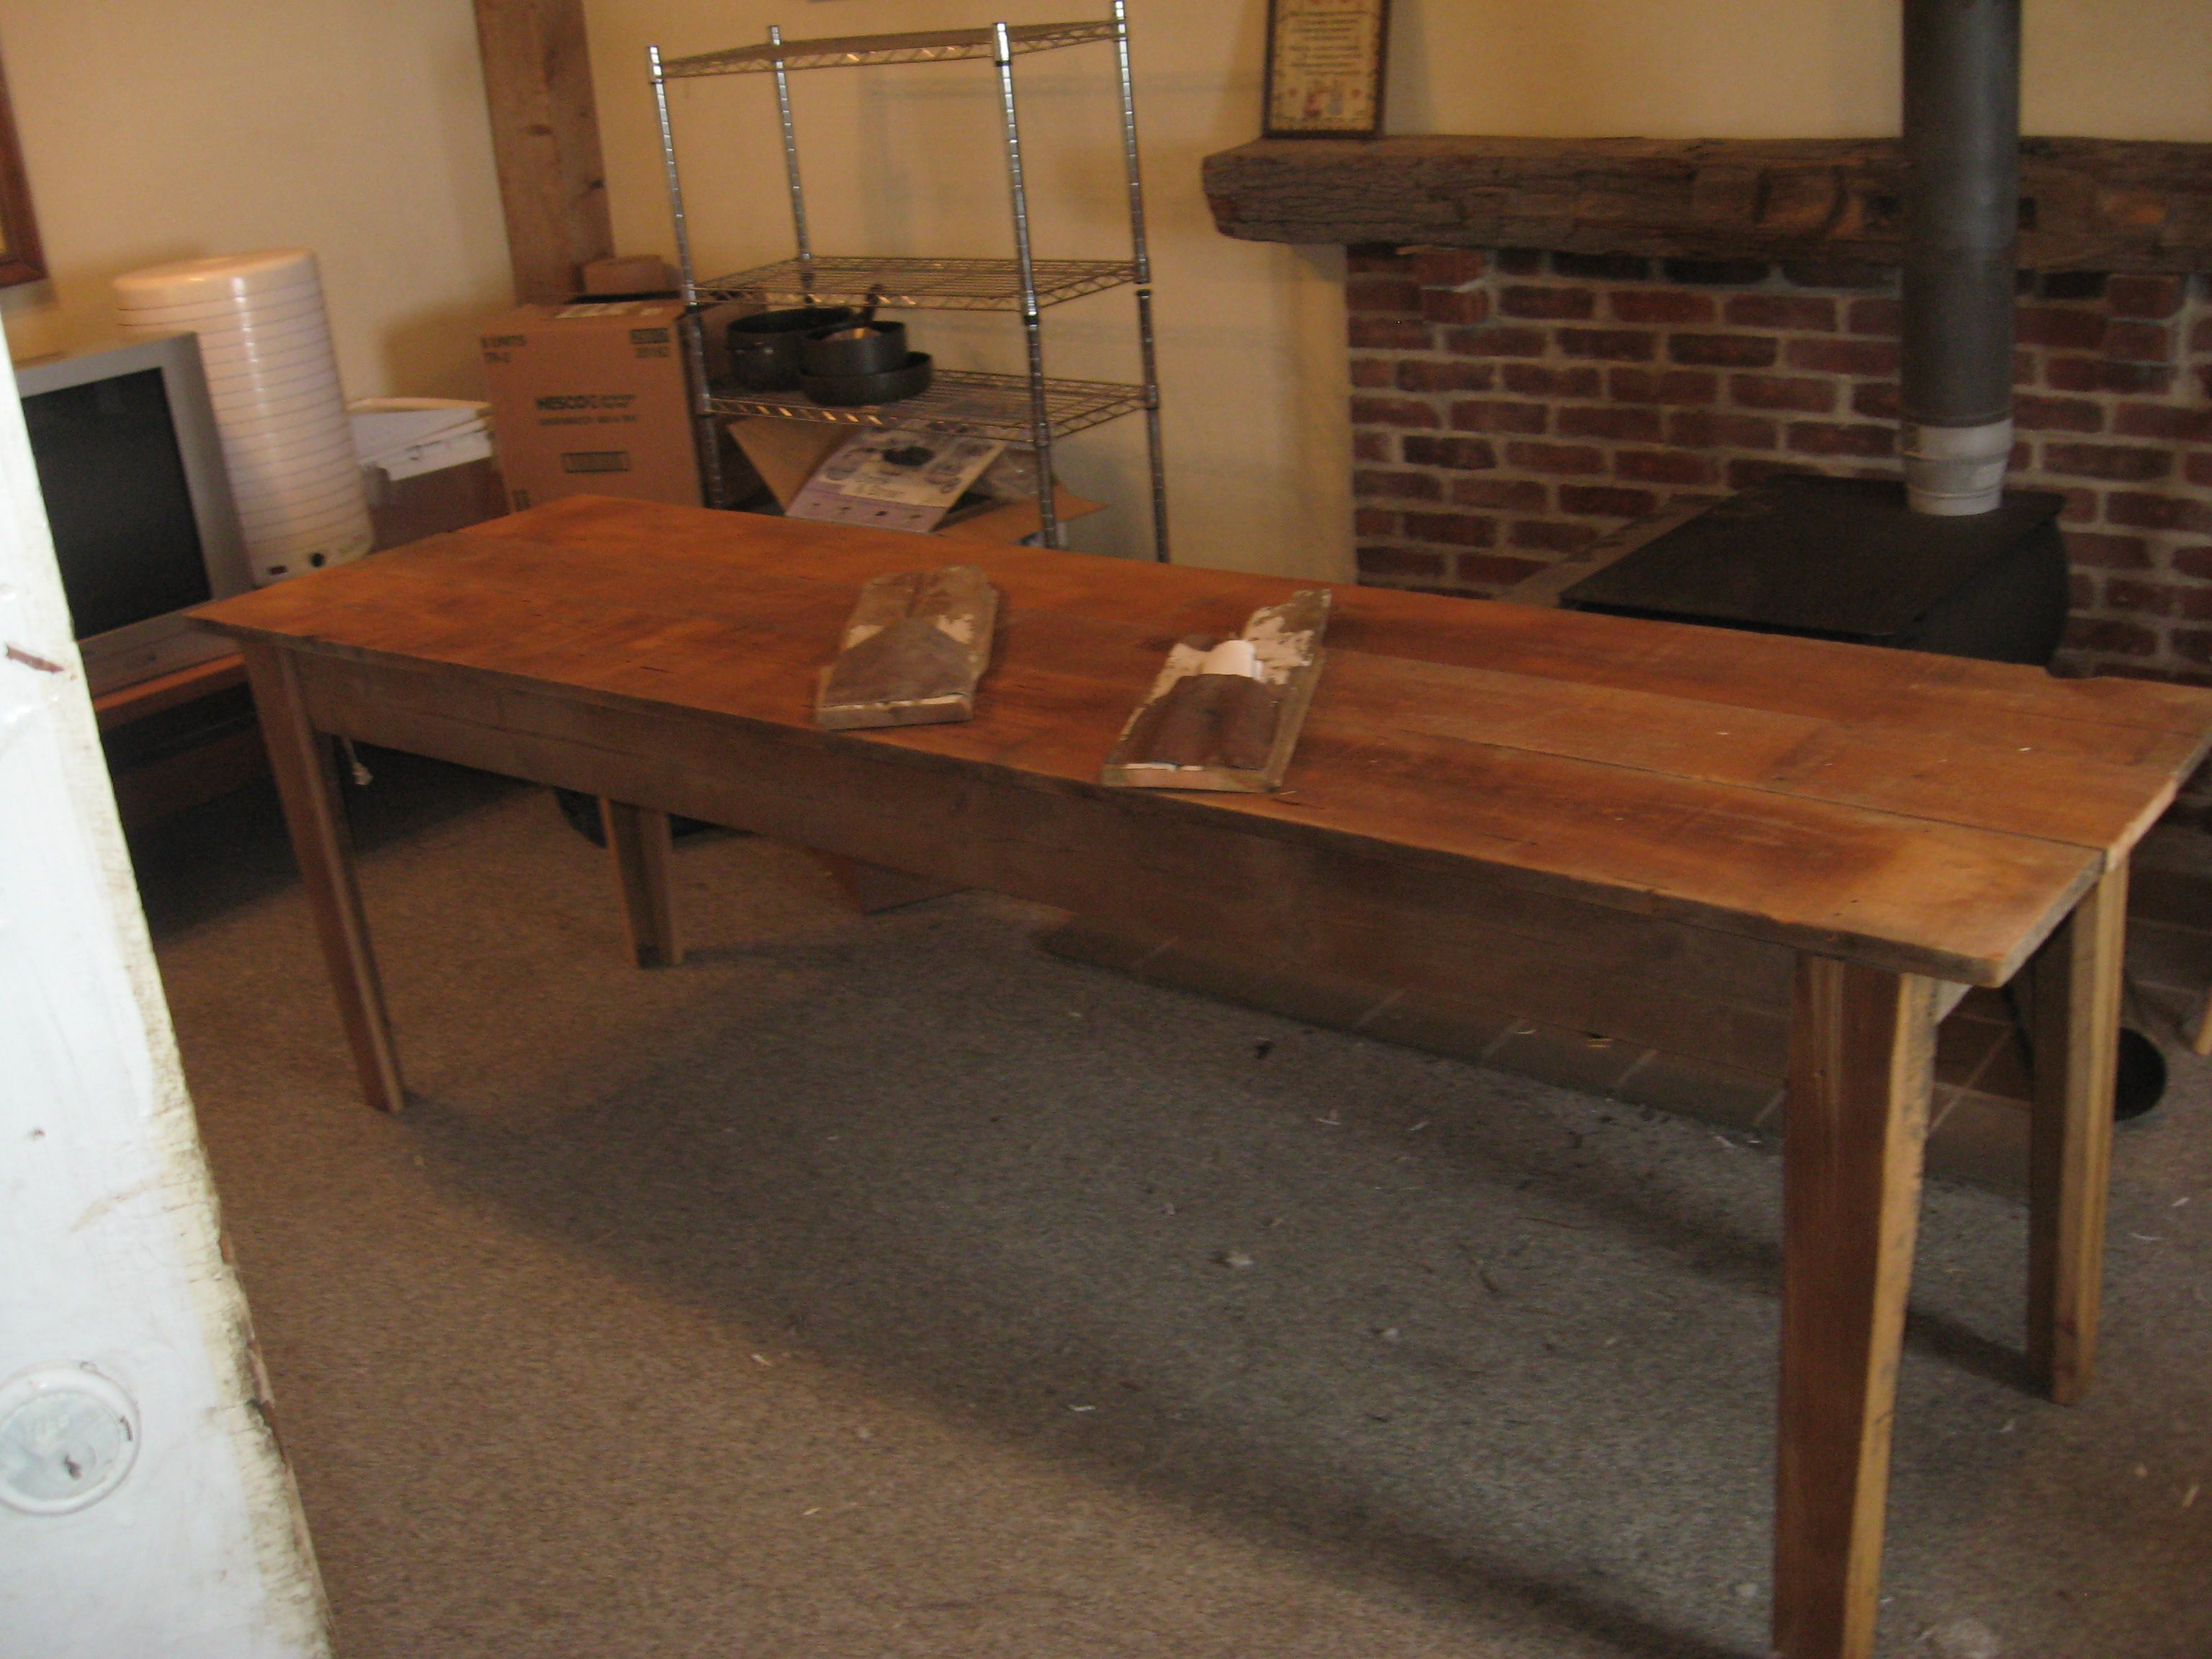 Bon Harvest Table As Narrow Kitchen Island (8 Ft By 28 Inch Unfinished)My  Husband Needs To Build This For Me!